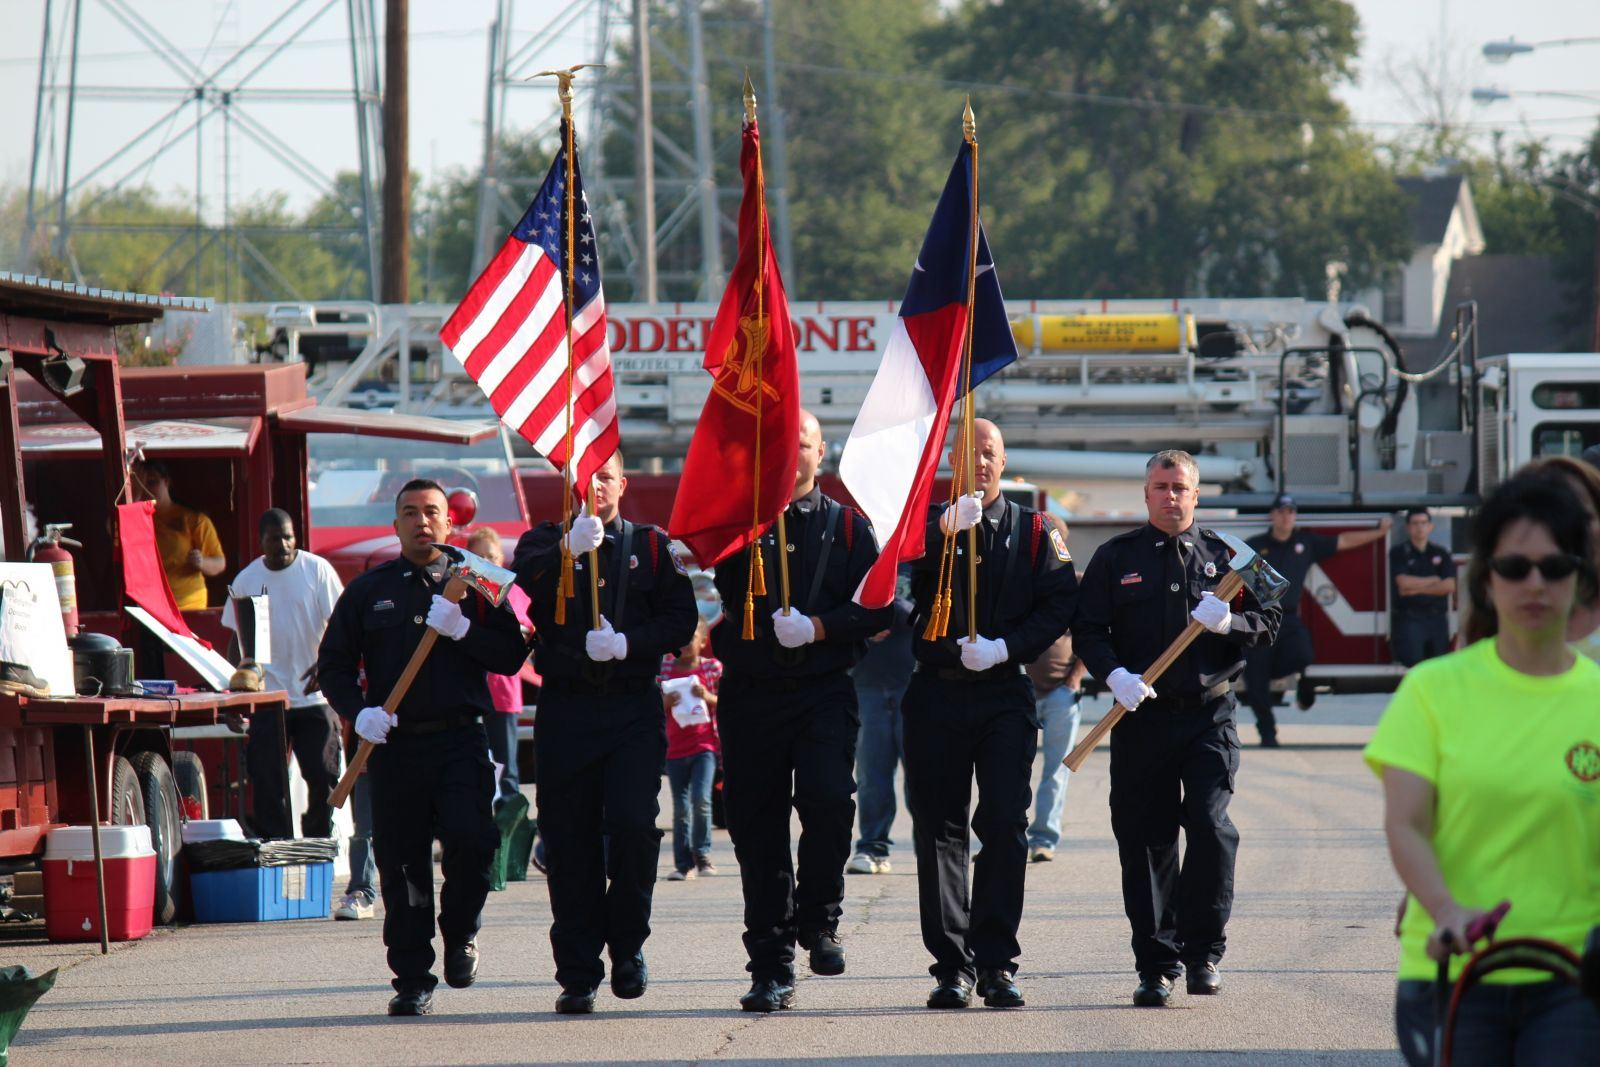 Honor Guard Marching in a Parade